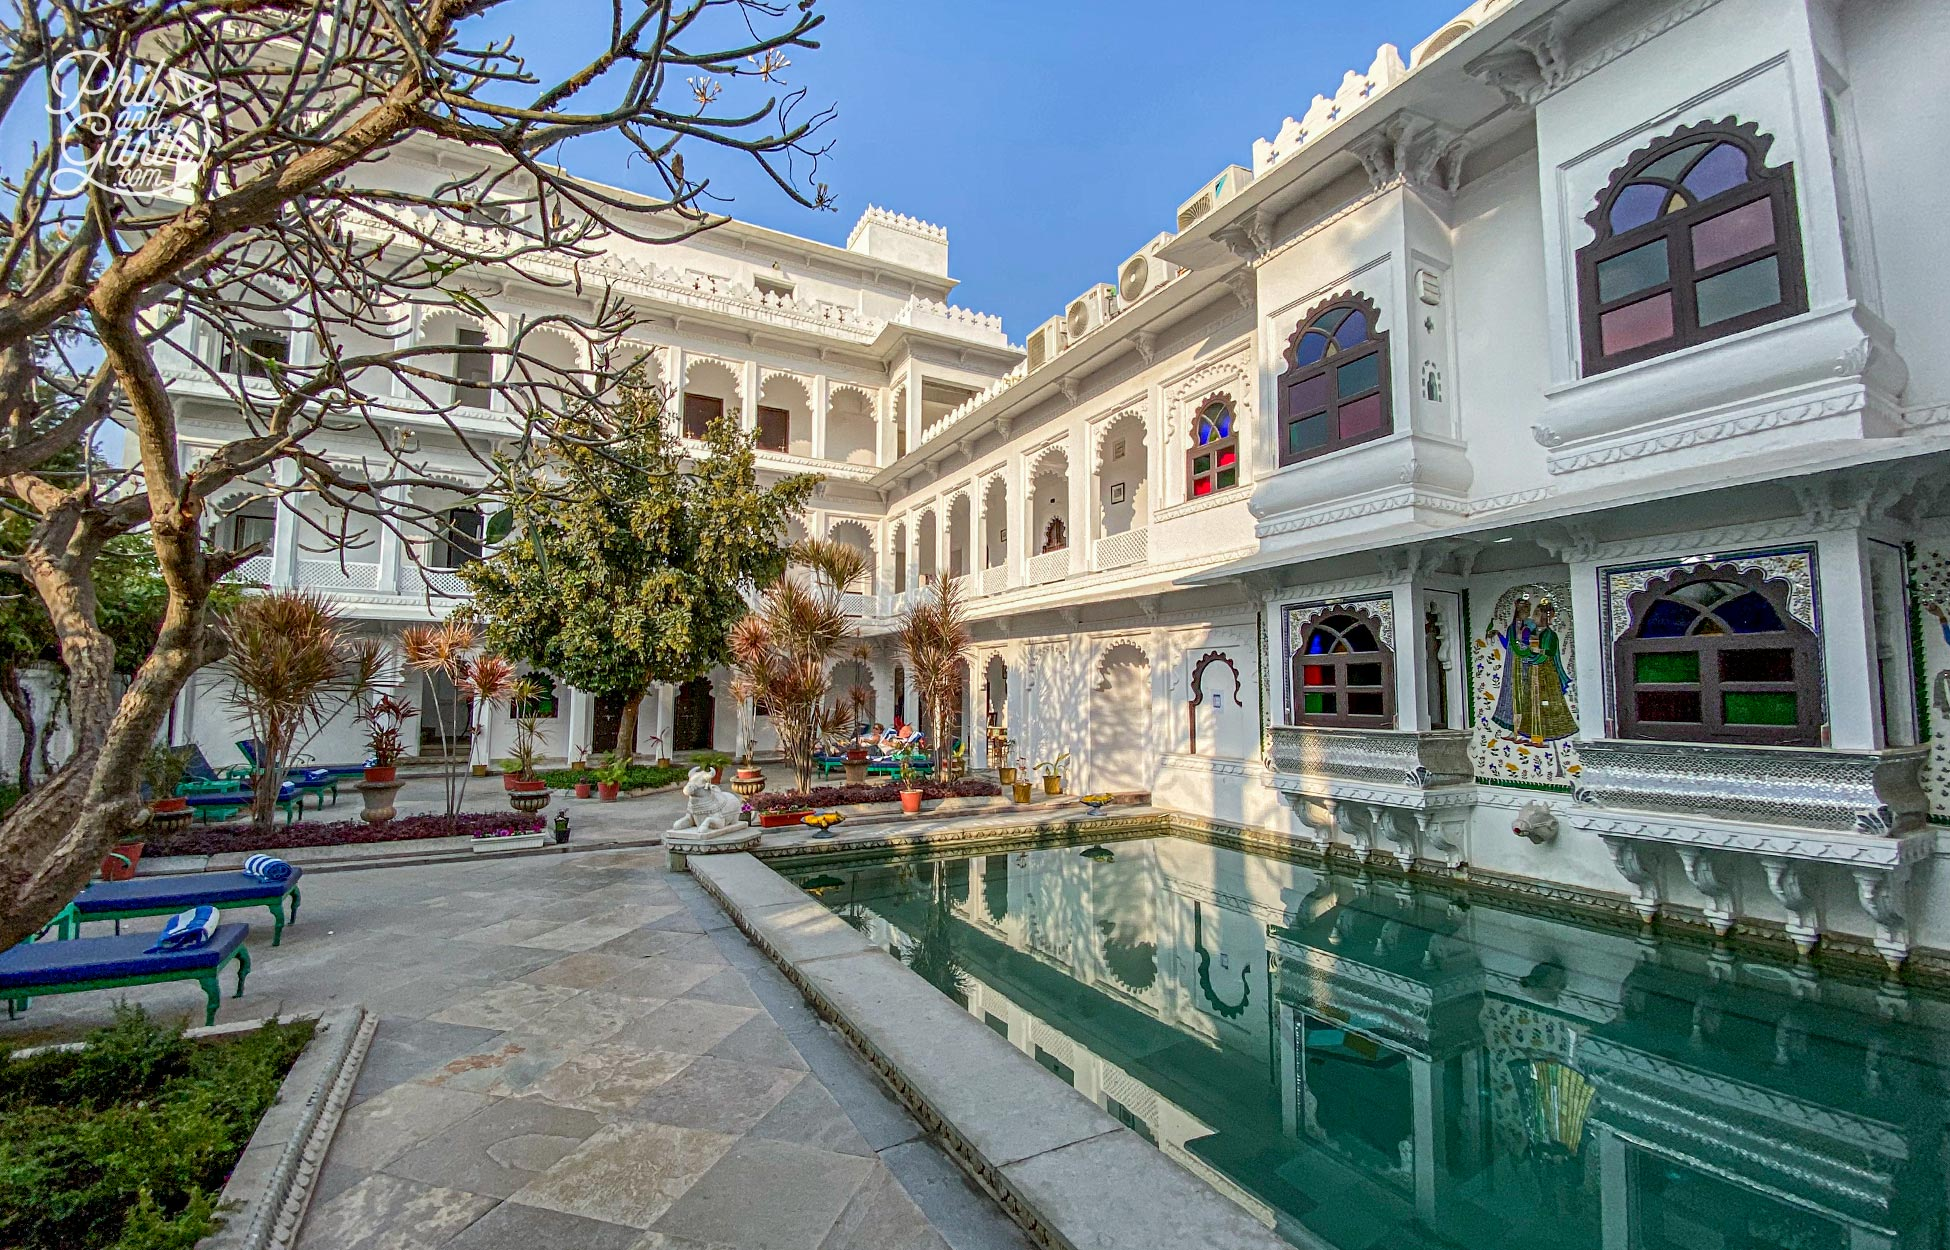 Amet Haveli is stunning we would love to stay here next time we visit Udaipur